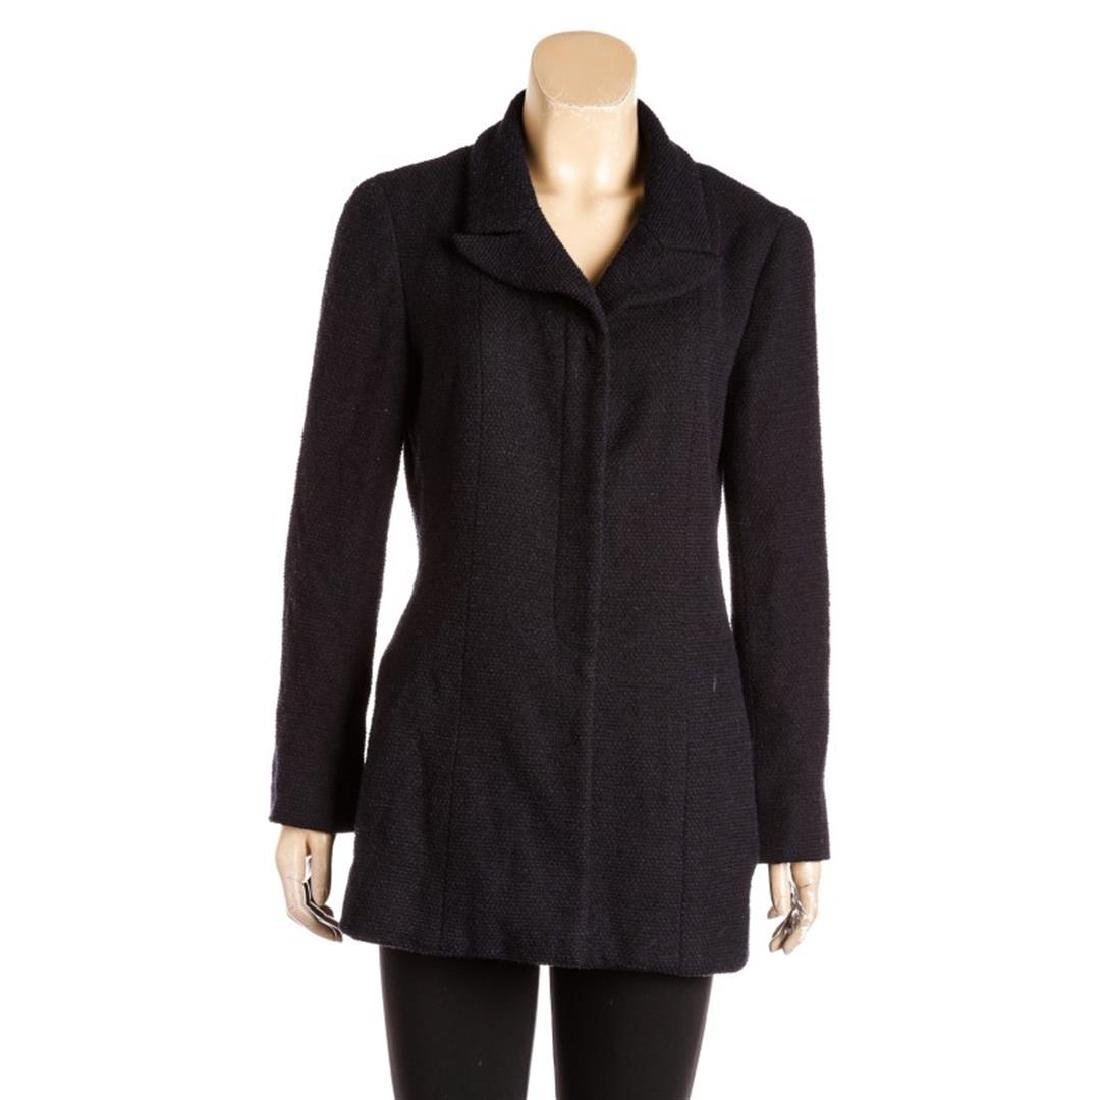 Chanel Navy Blue Tweed Mid-Length Jacket